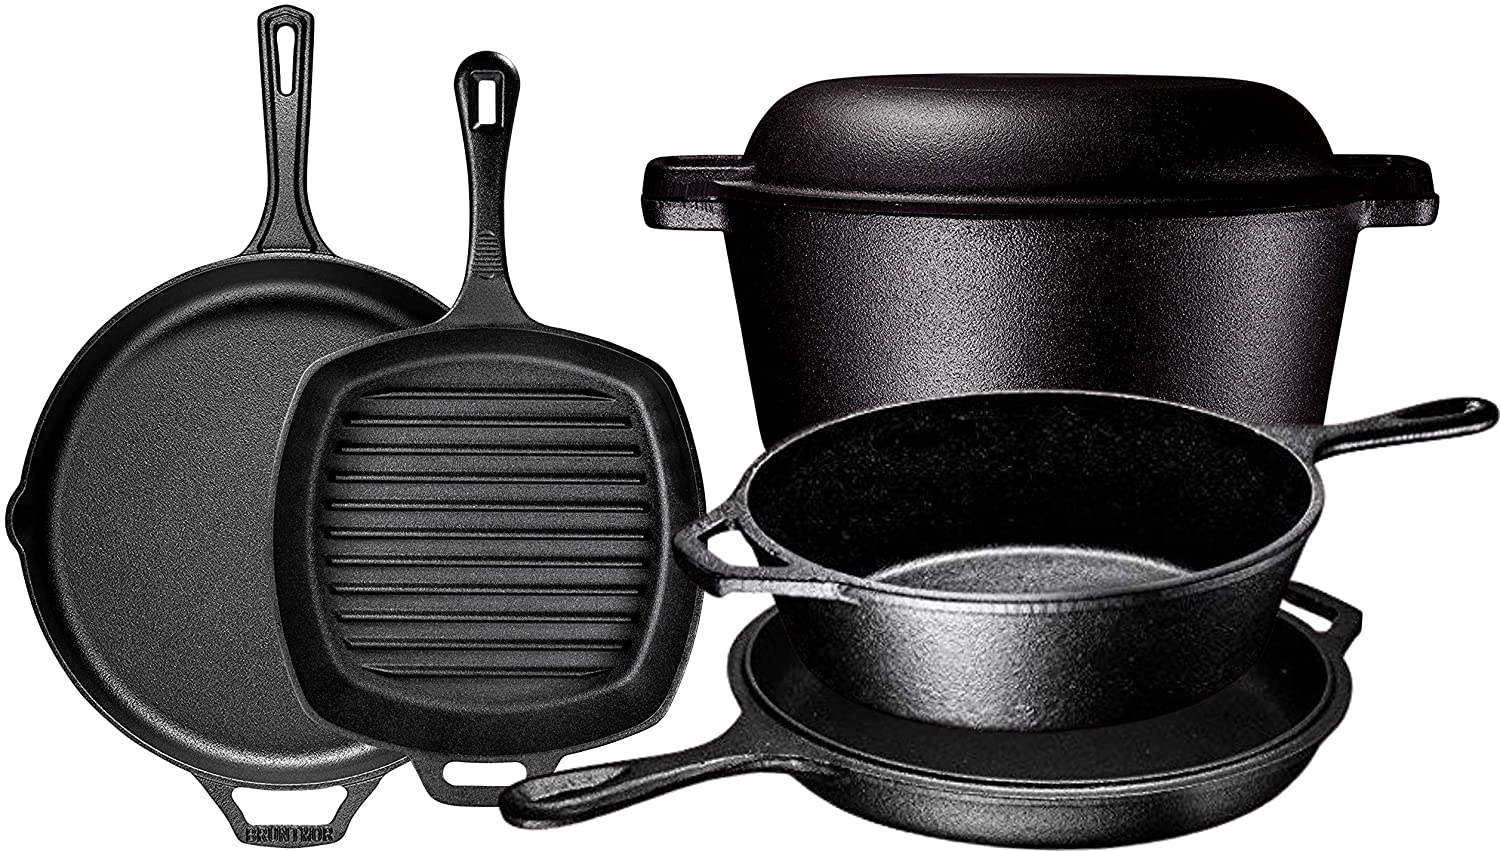 Pre Seasoned Cast Iron 6 Piece Bundle Gift Set, Double Dutch, Multi Cooker, Skillet & Square Grill Pan, Kitchen and Outdoor Camping Cookware Set (6 Piece)